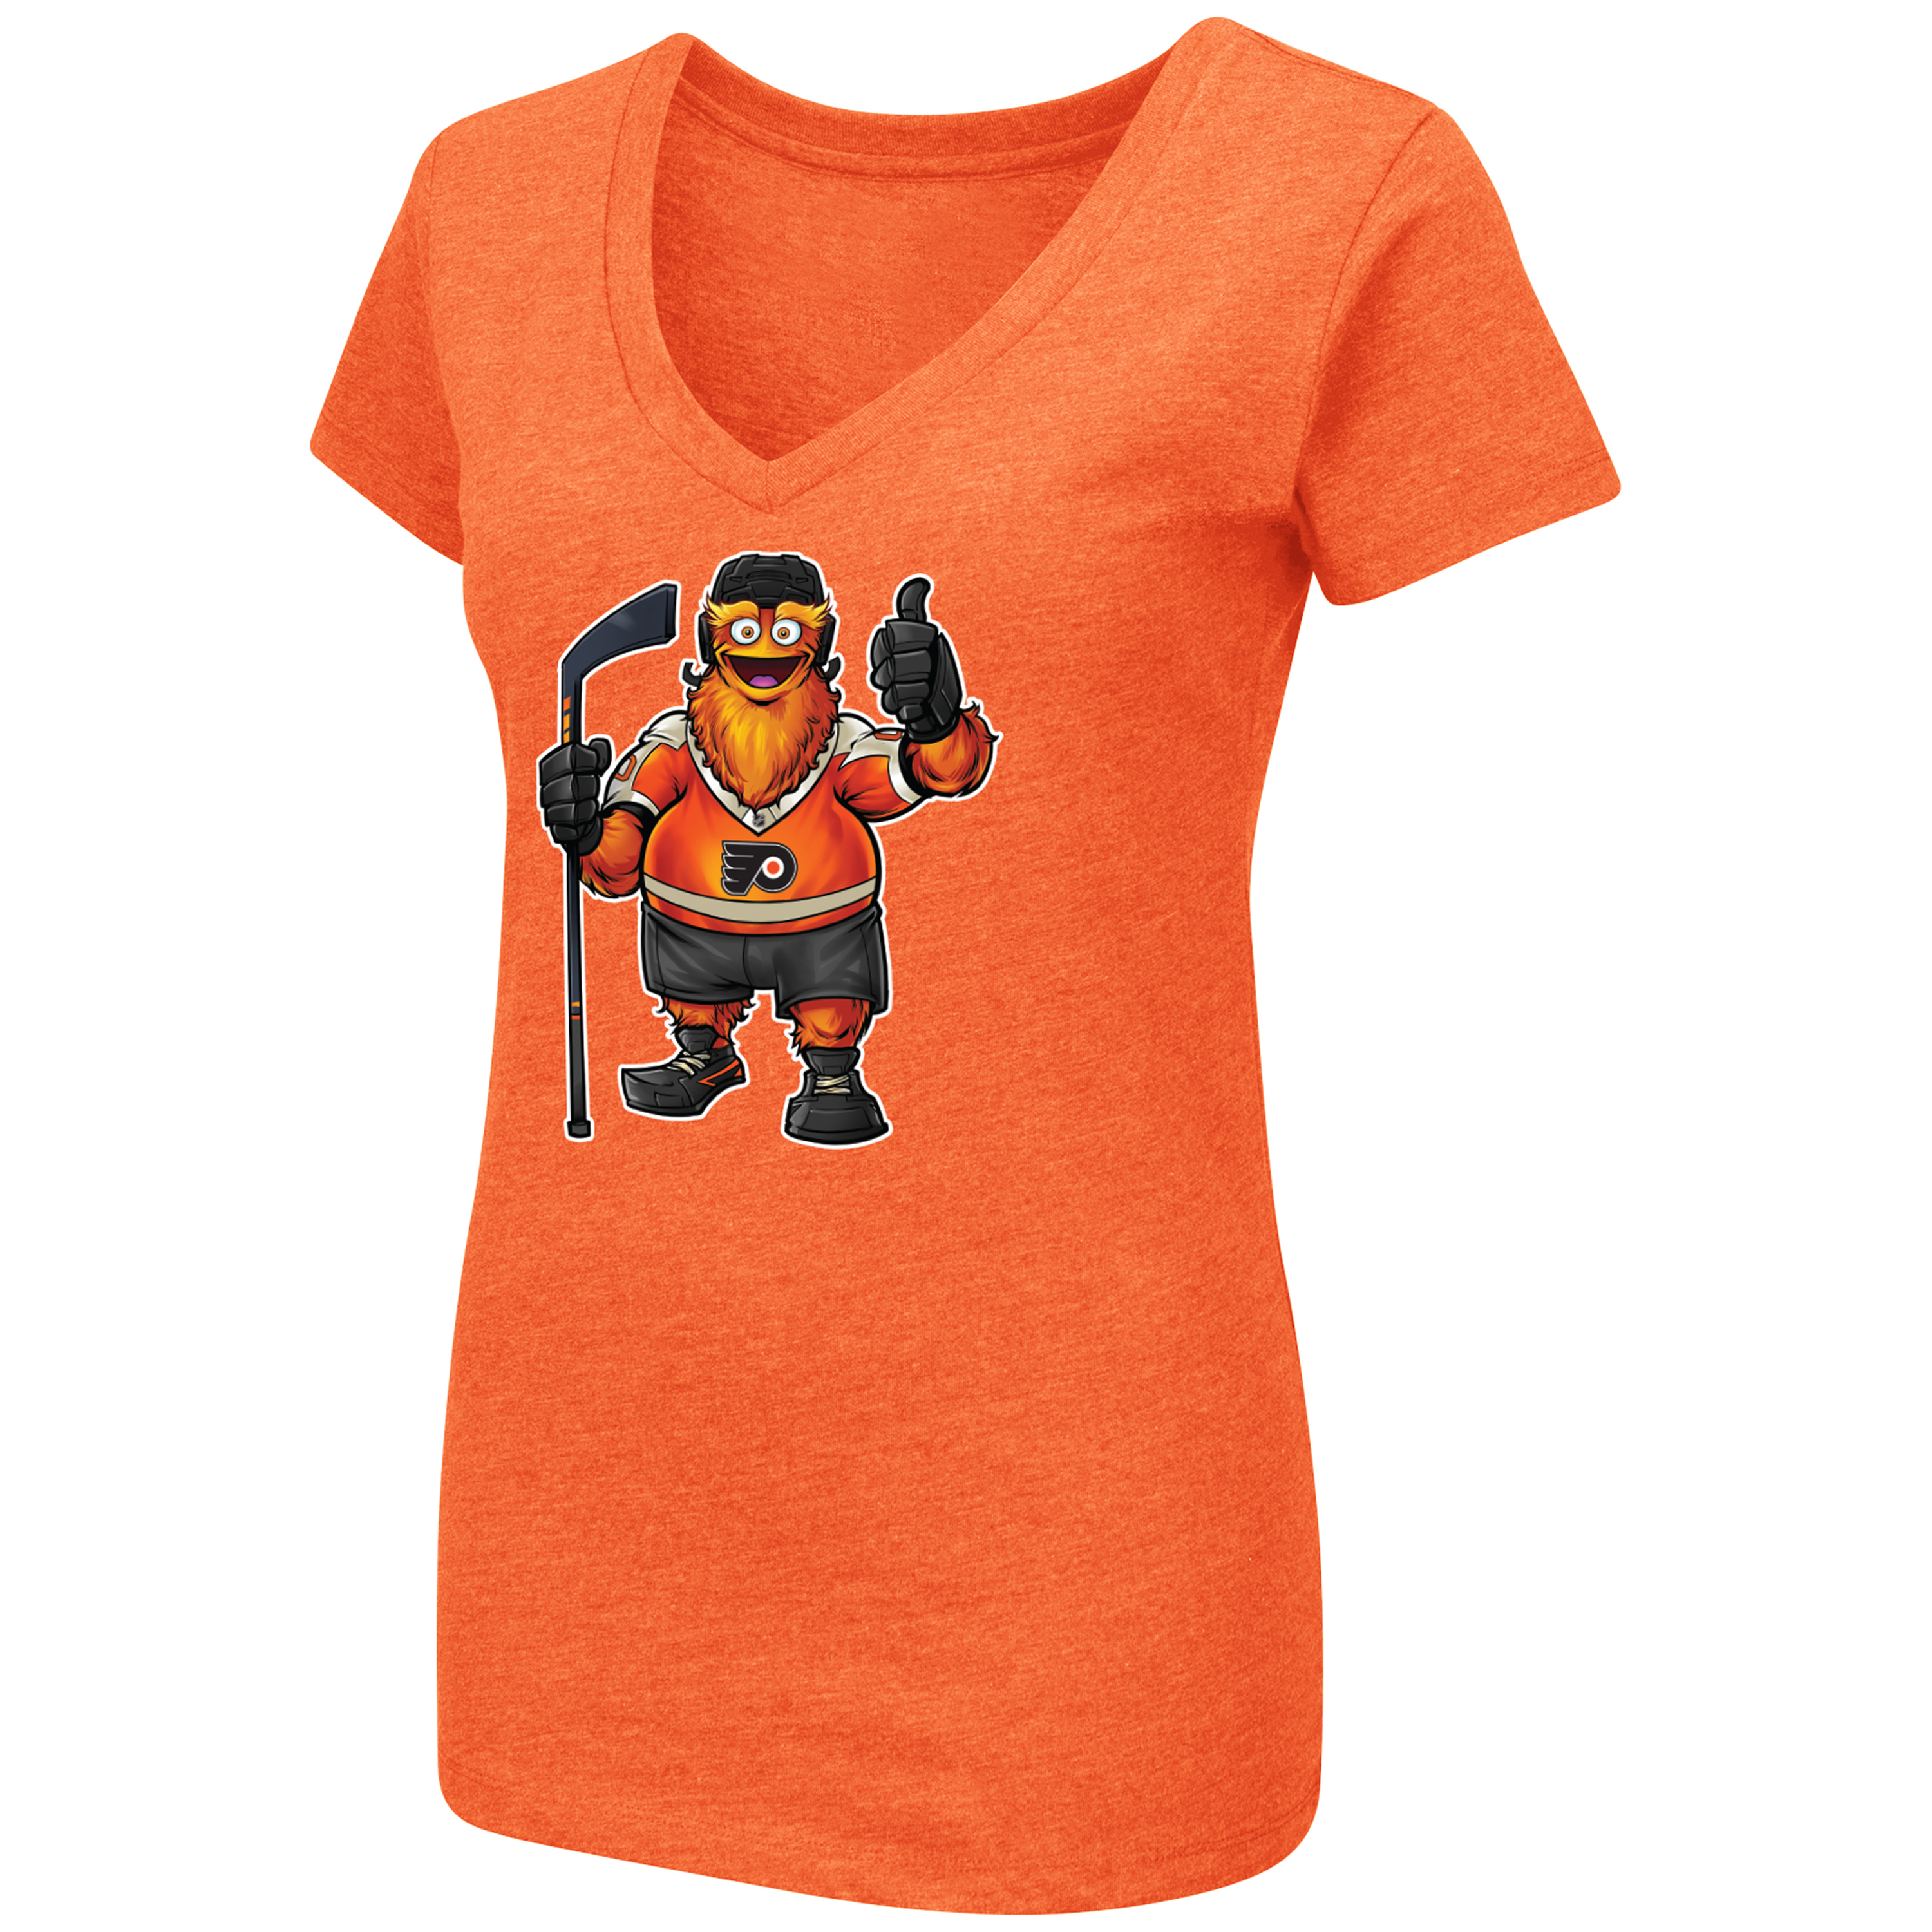 3683139ce Philadelphia Flyers Women s Gritty Thumbs Up Tee by Colosseum ...